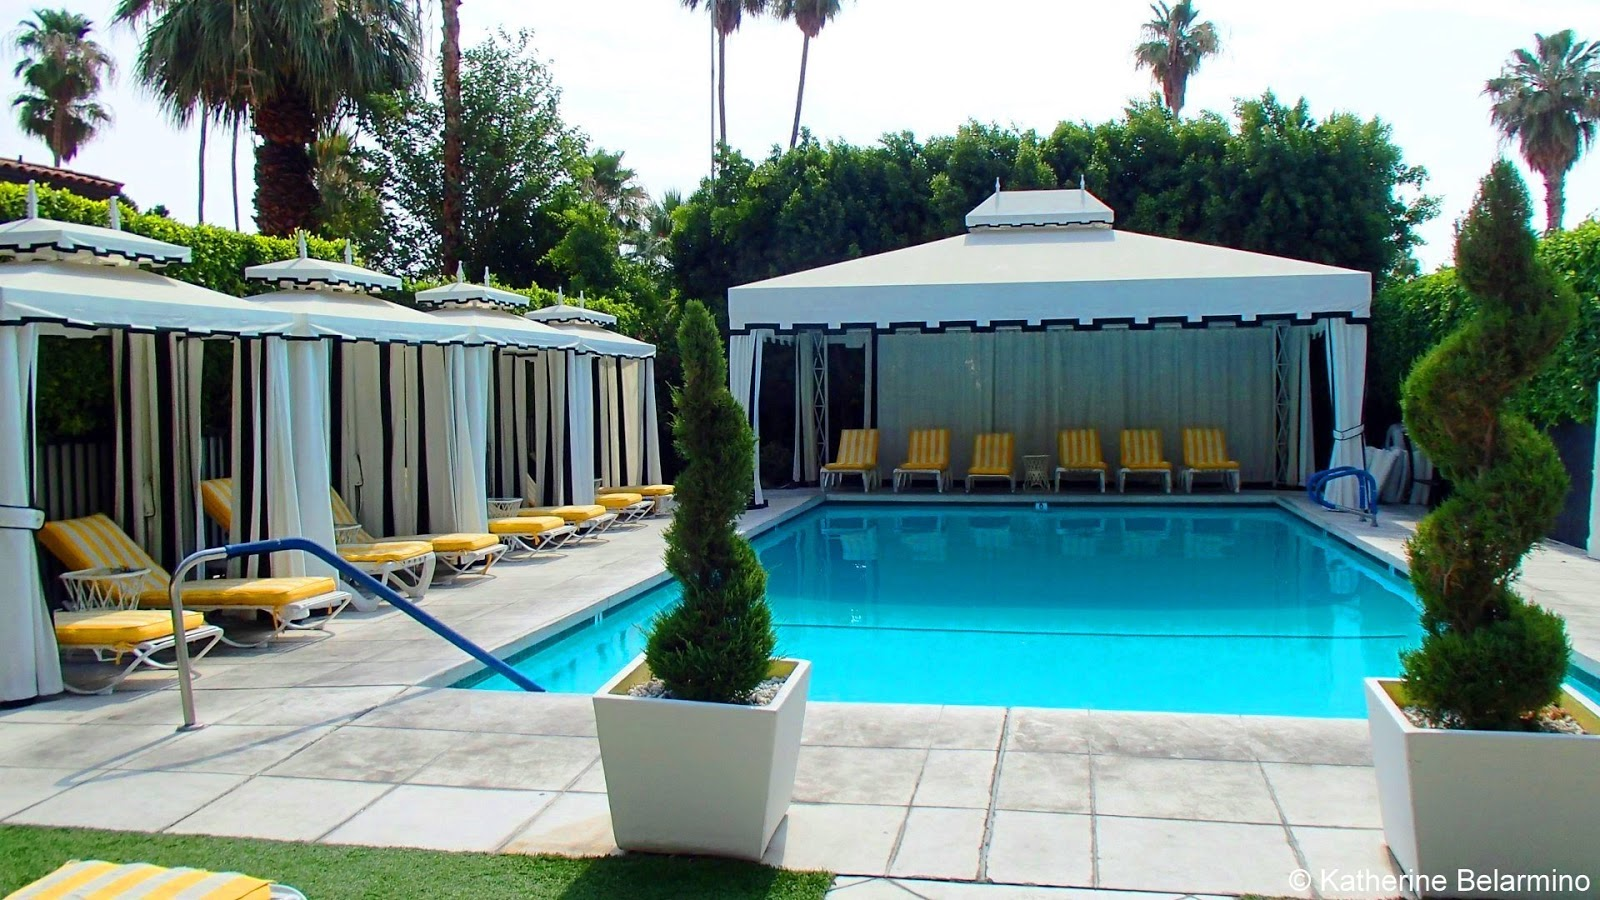 The perfect girls weekend getaway in palm springs for Viceroy palm springs restaurant